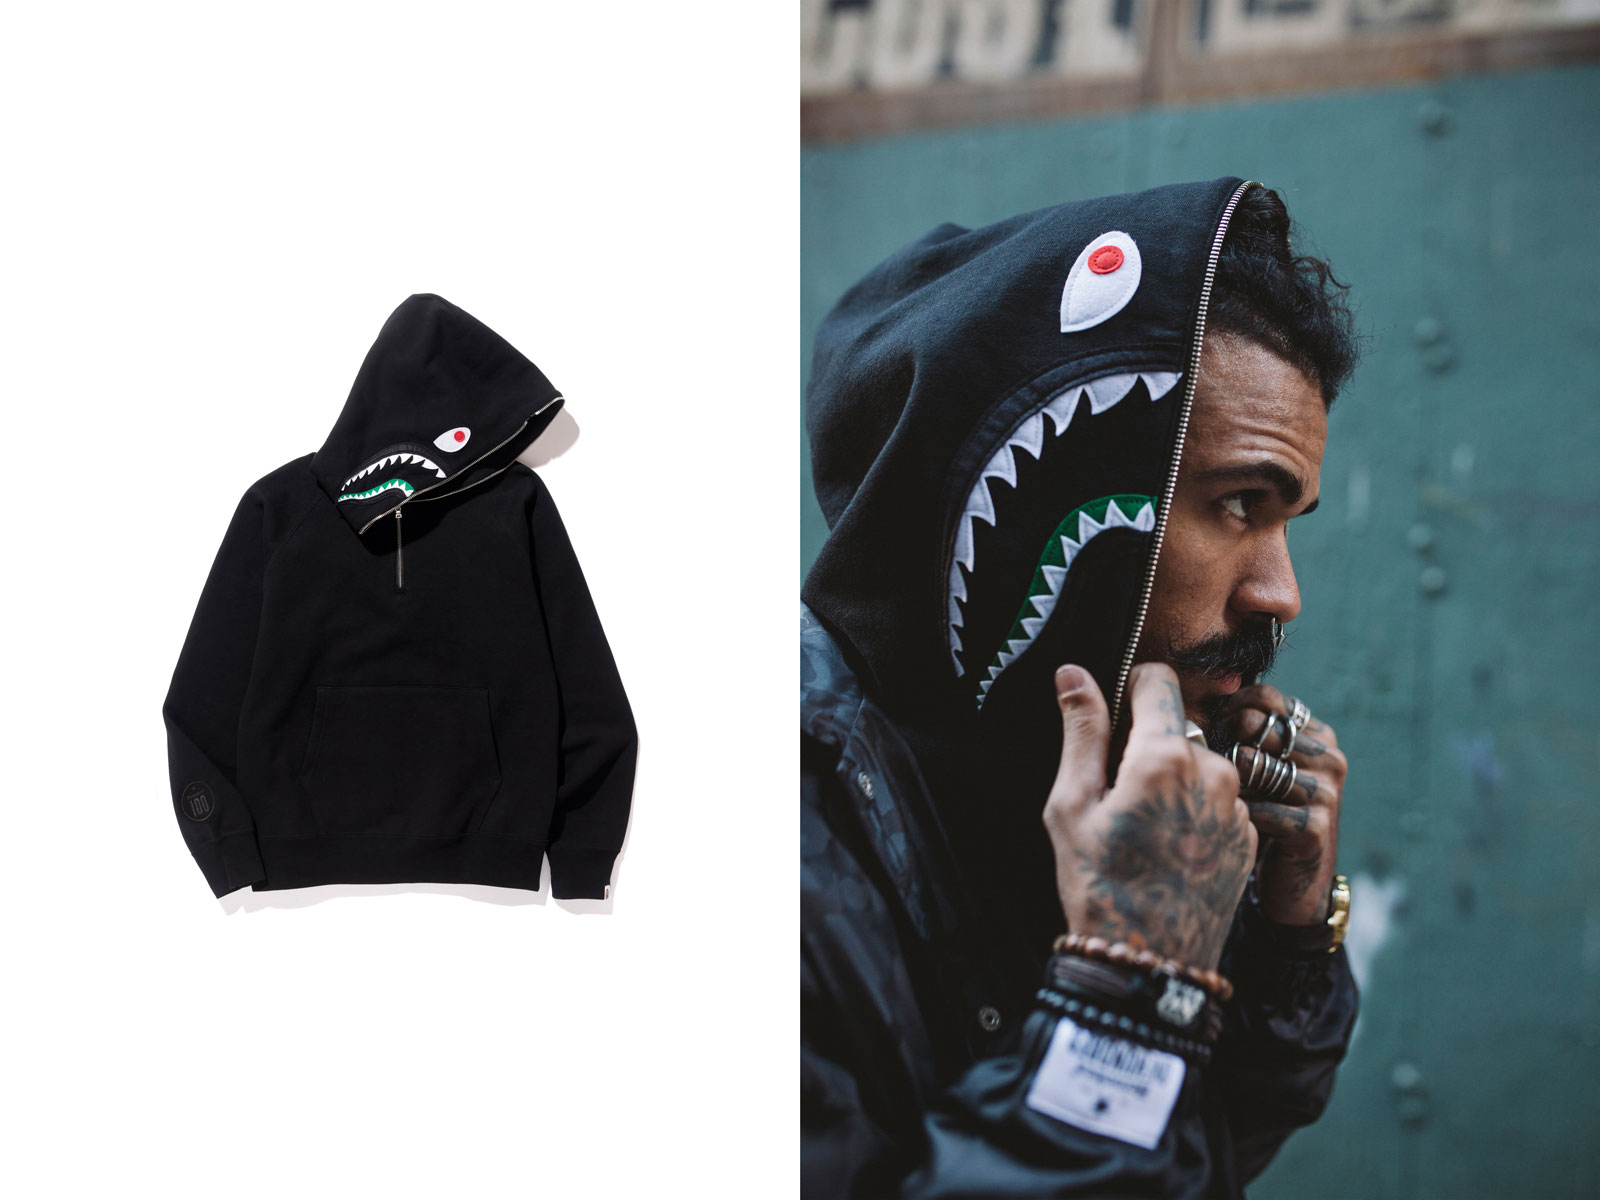 ec1f0dd20d83 Heineken and A Bathing Ape Collaborated on a Limited Edition Clothing Line